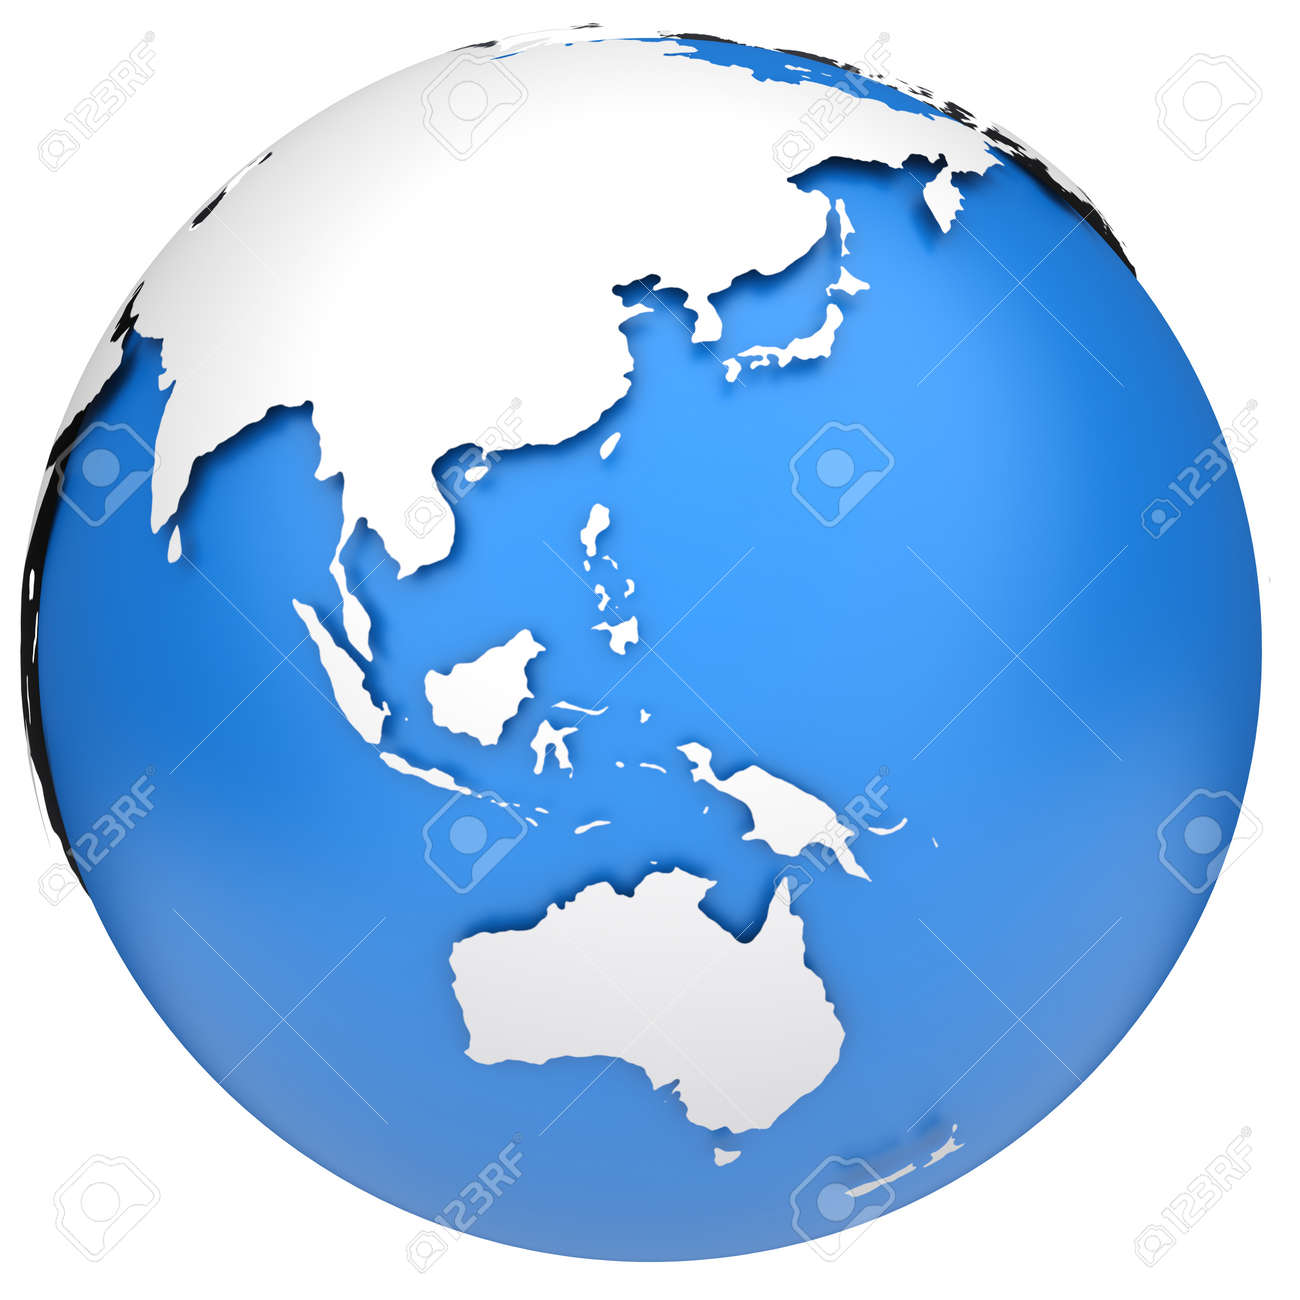 Earth globe 3d model Side of Asia, Australia and Indonesia on vector map indonesia, tv indonesia, travel map indonesia, satellite indonesia, map with physical features of indonesia,